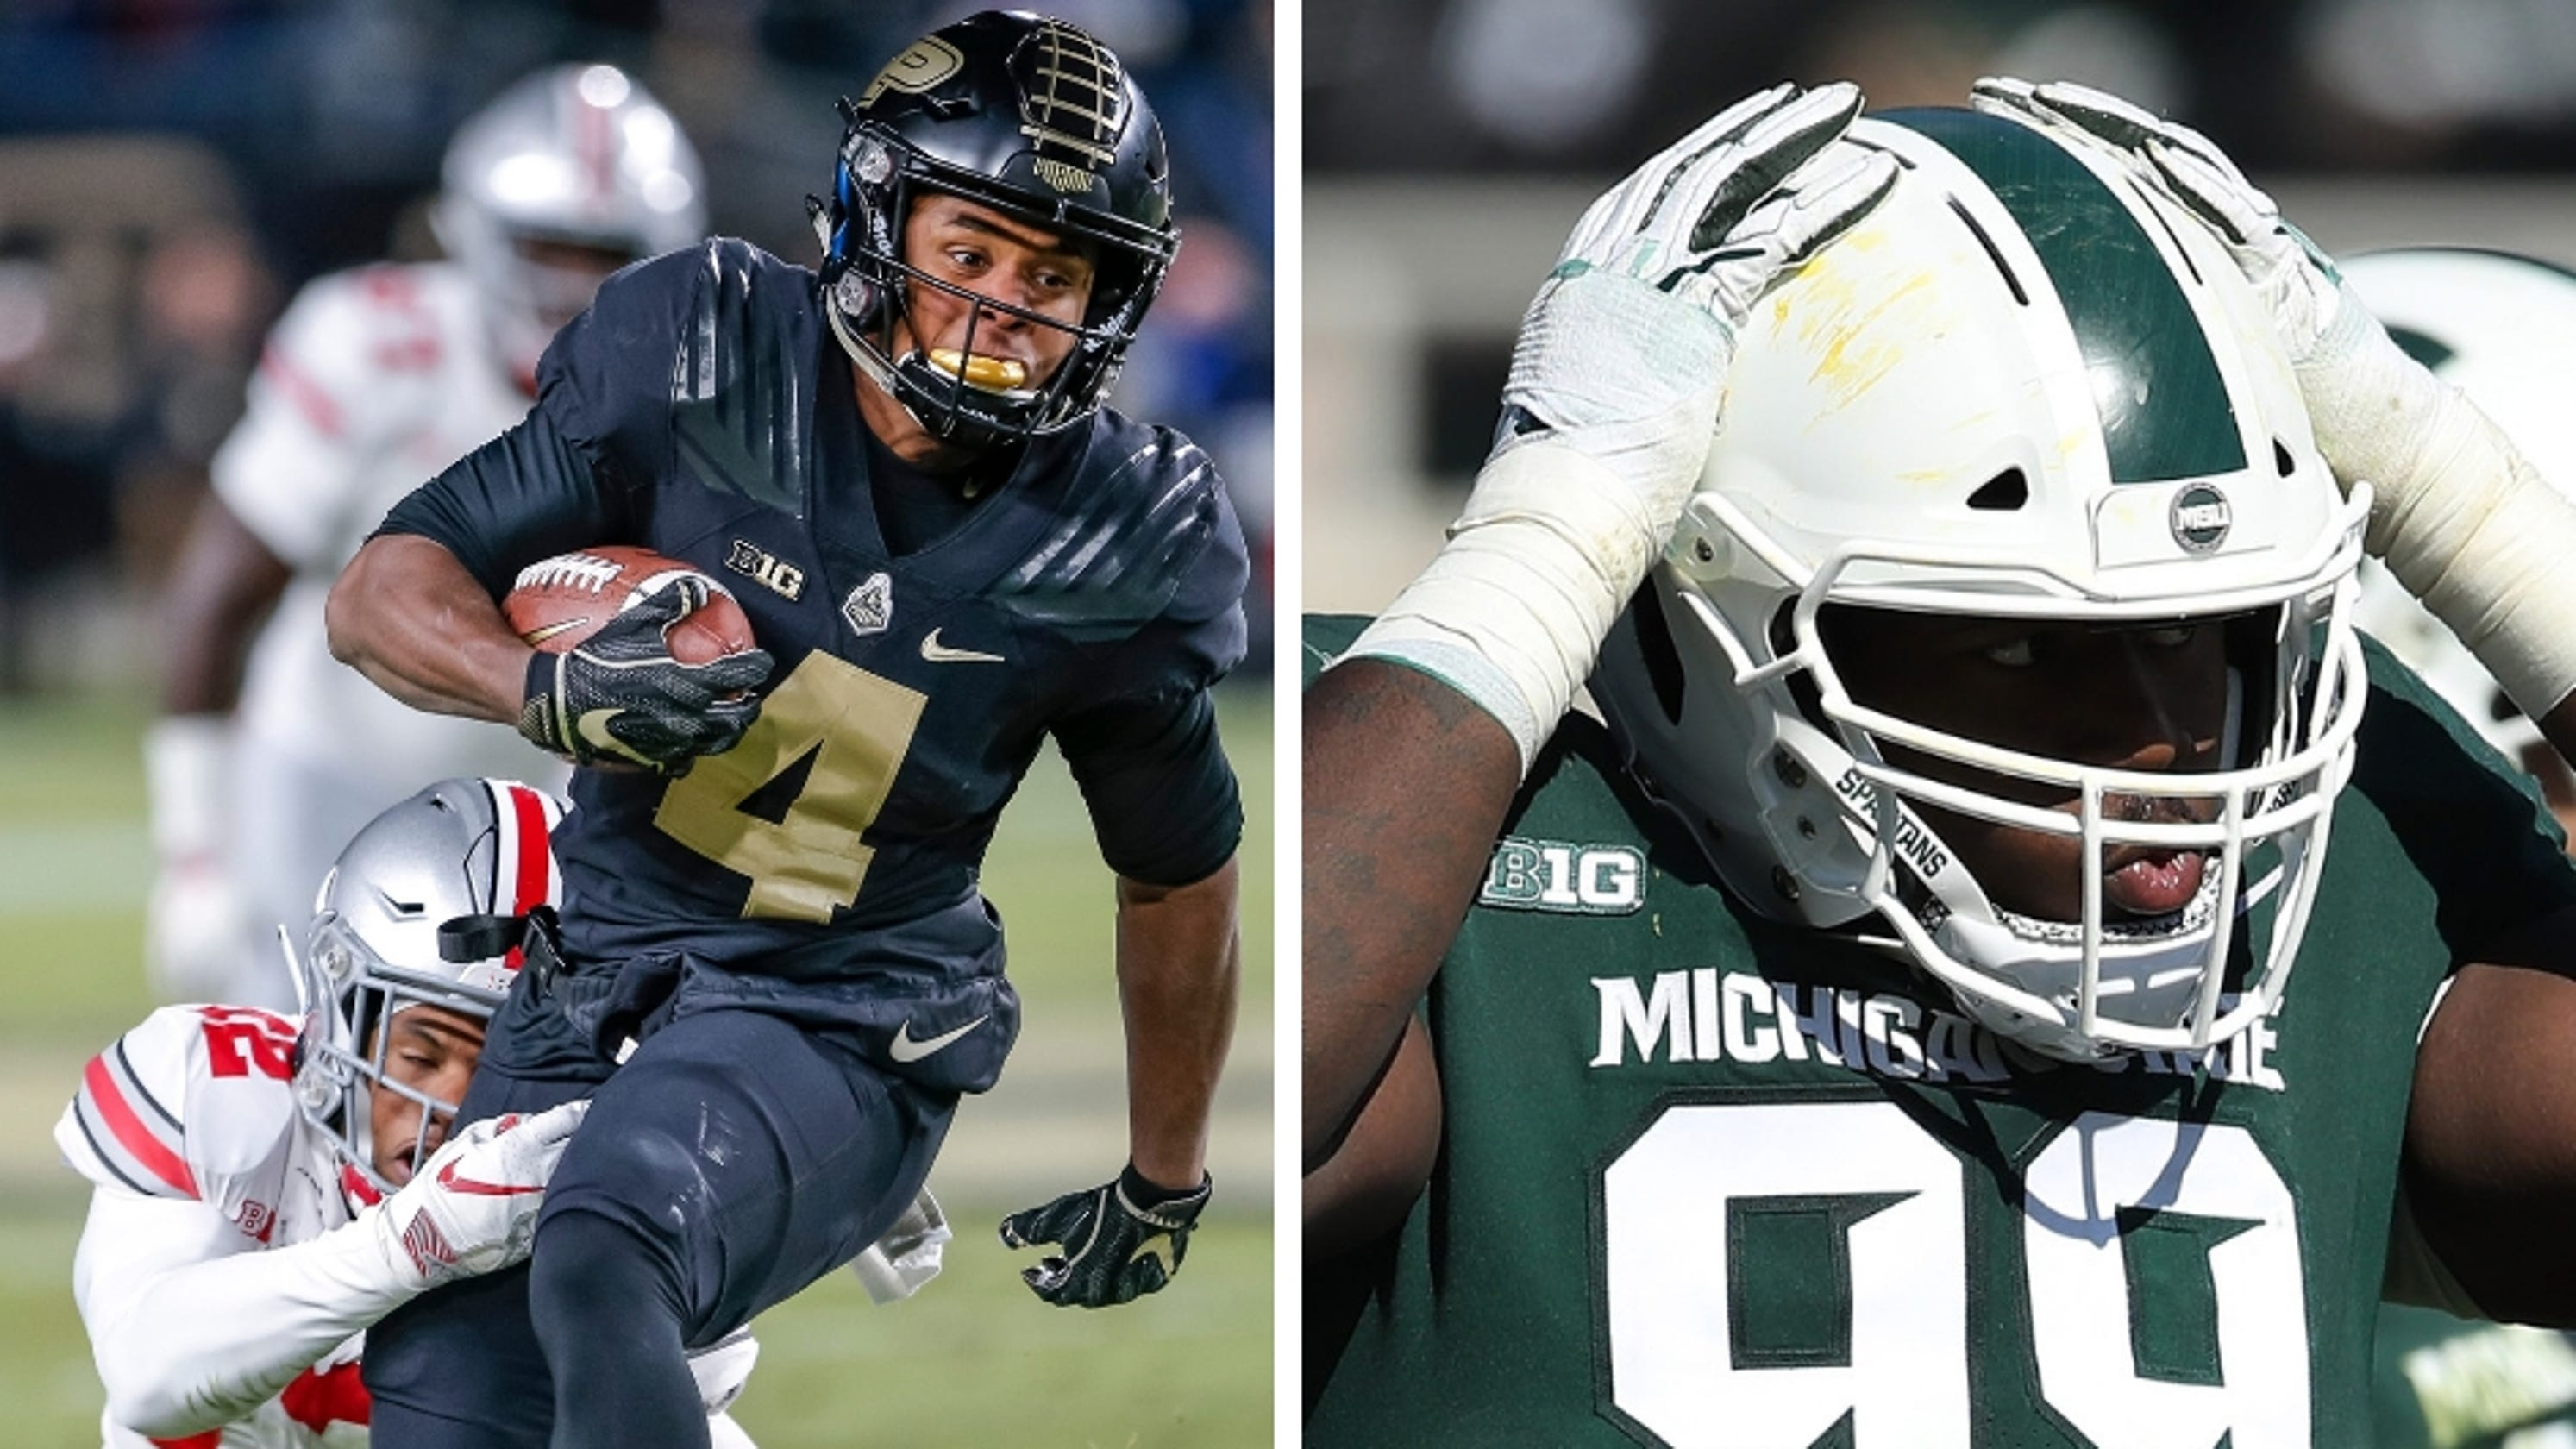 Michigan State vs. Purdue football: How to watch on TV, stream